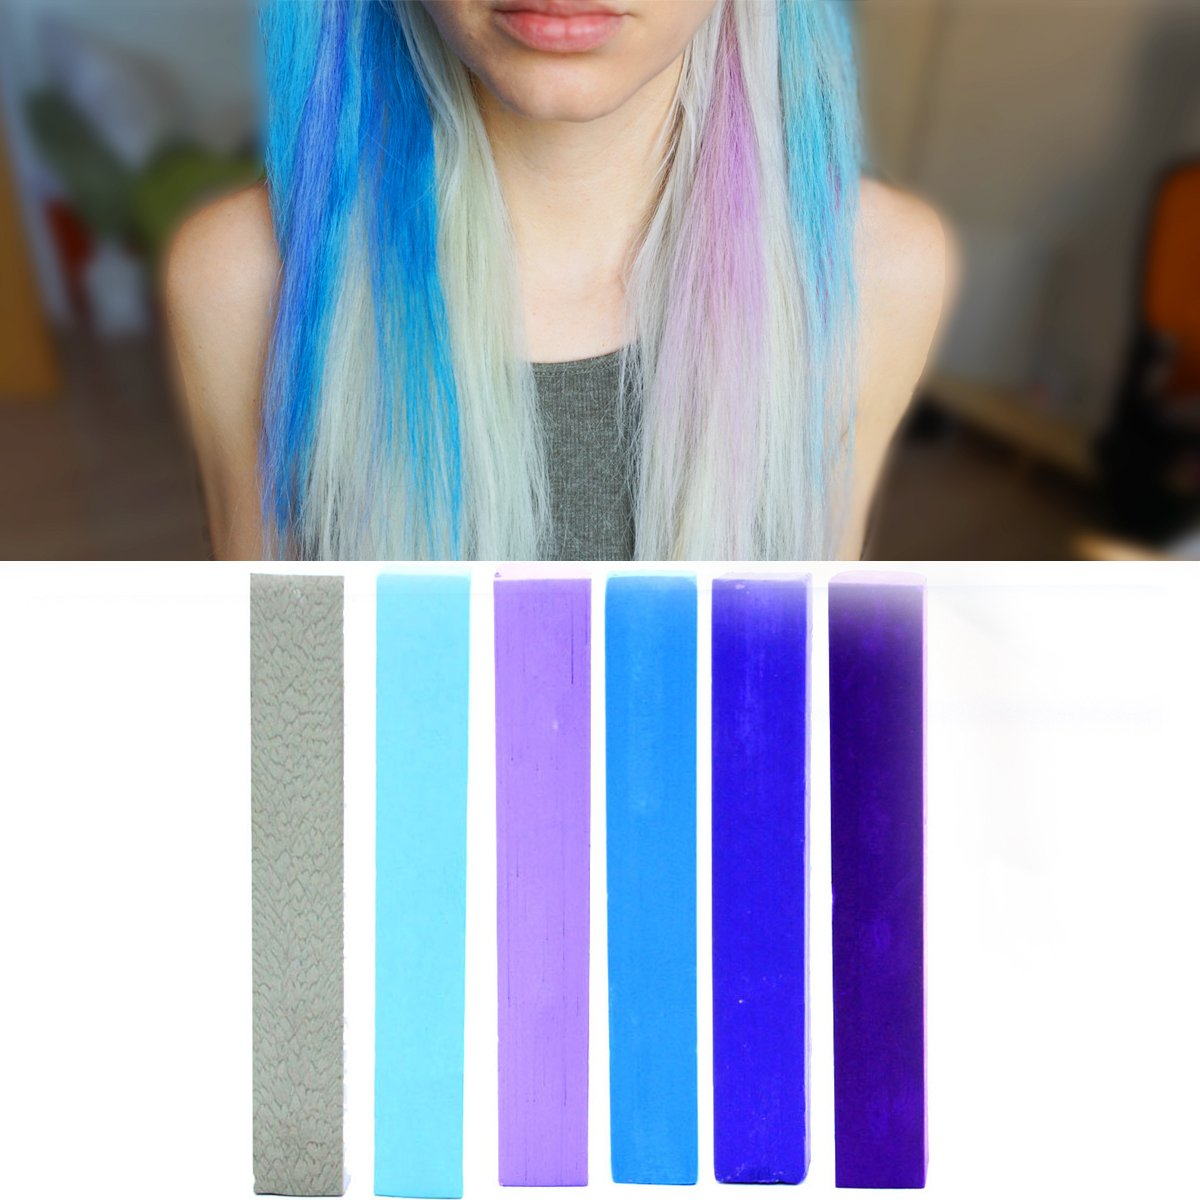 Buy Ultimate Blue Miley Cyrus Ombre Hair Dye Set 6 Shades Of Blue